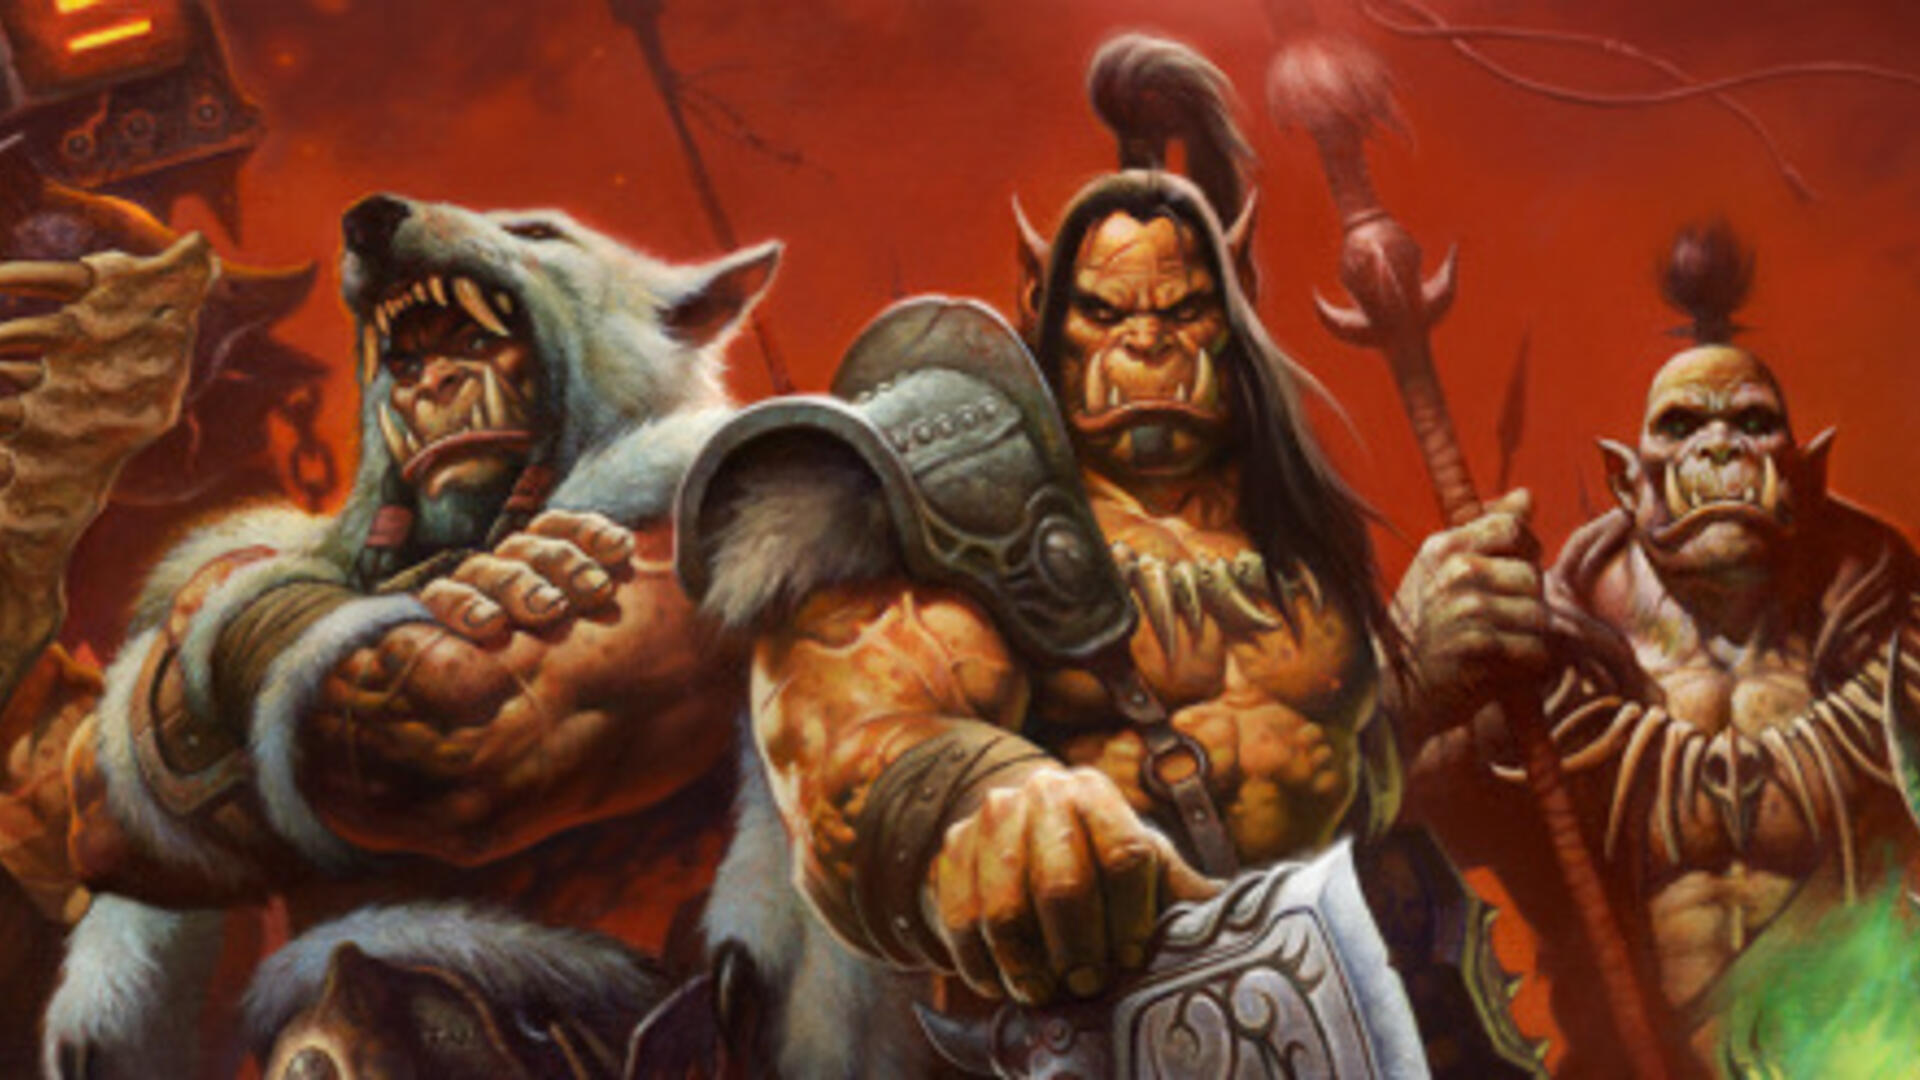 Revisiting the World of Warcraft in Warlords of Draenor